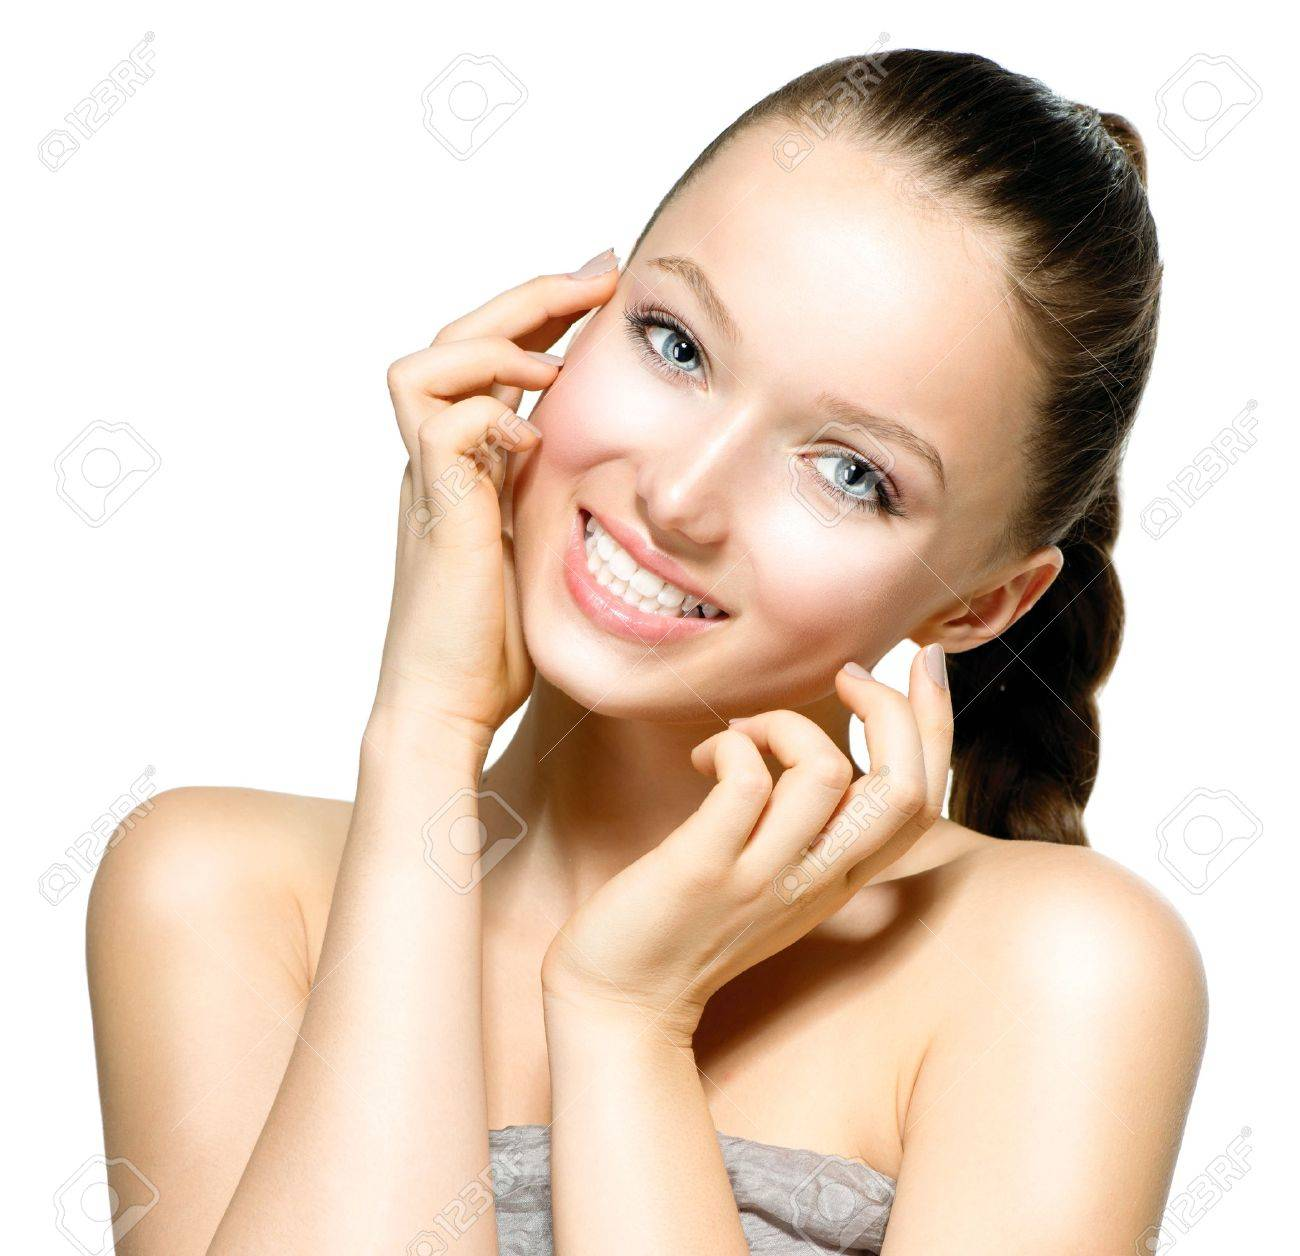 Beautiful Young Woman with Fresh Clean Skin touching her Face Stock Photo - 18294911